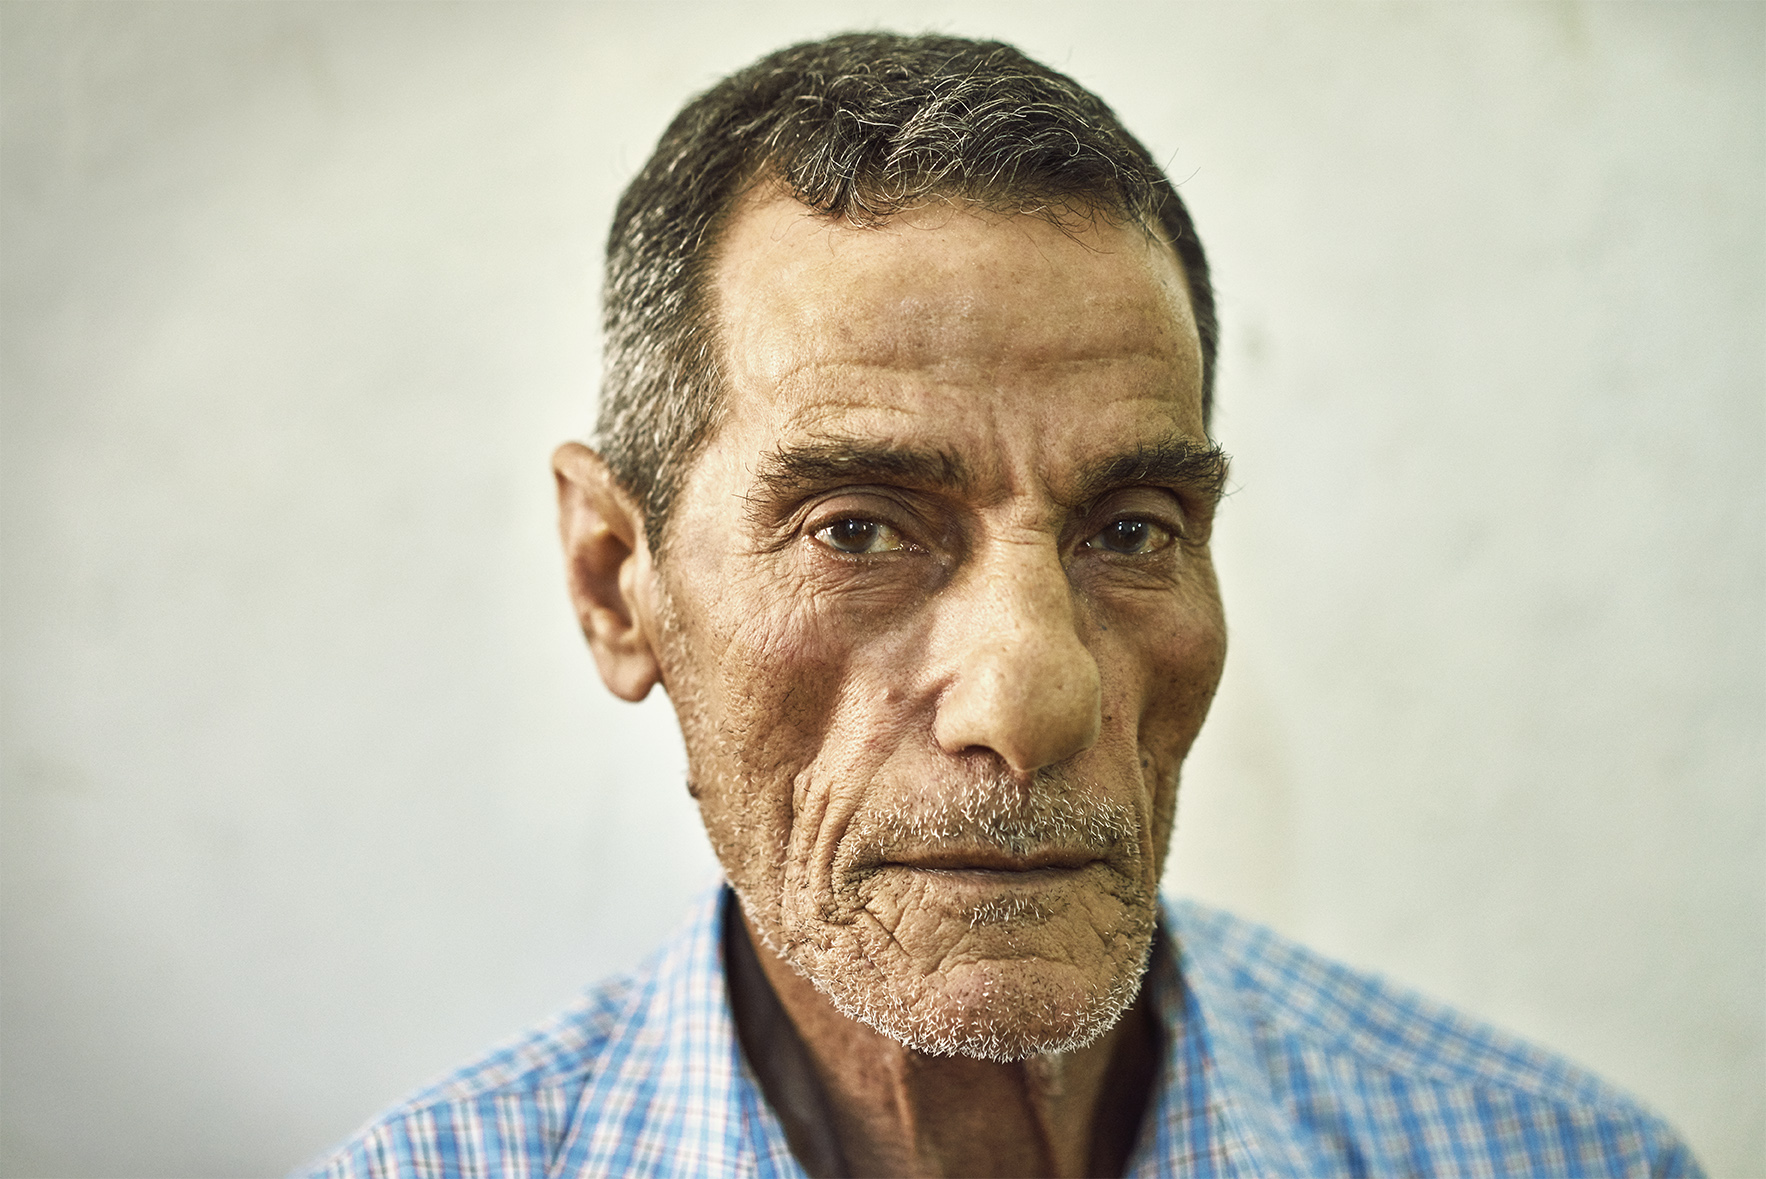 Palestinian Guy Portrait